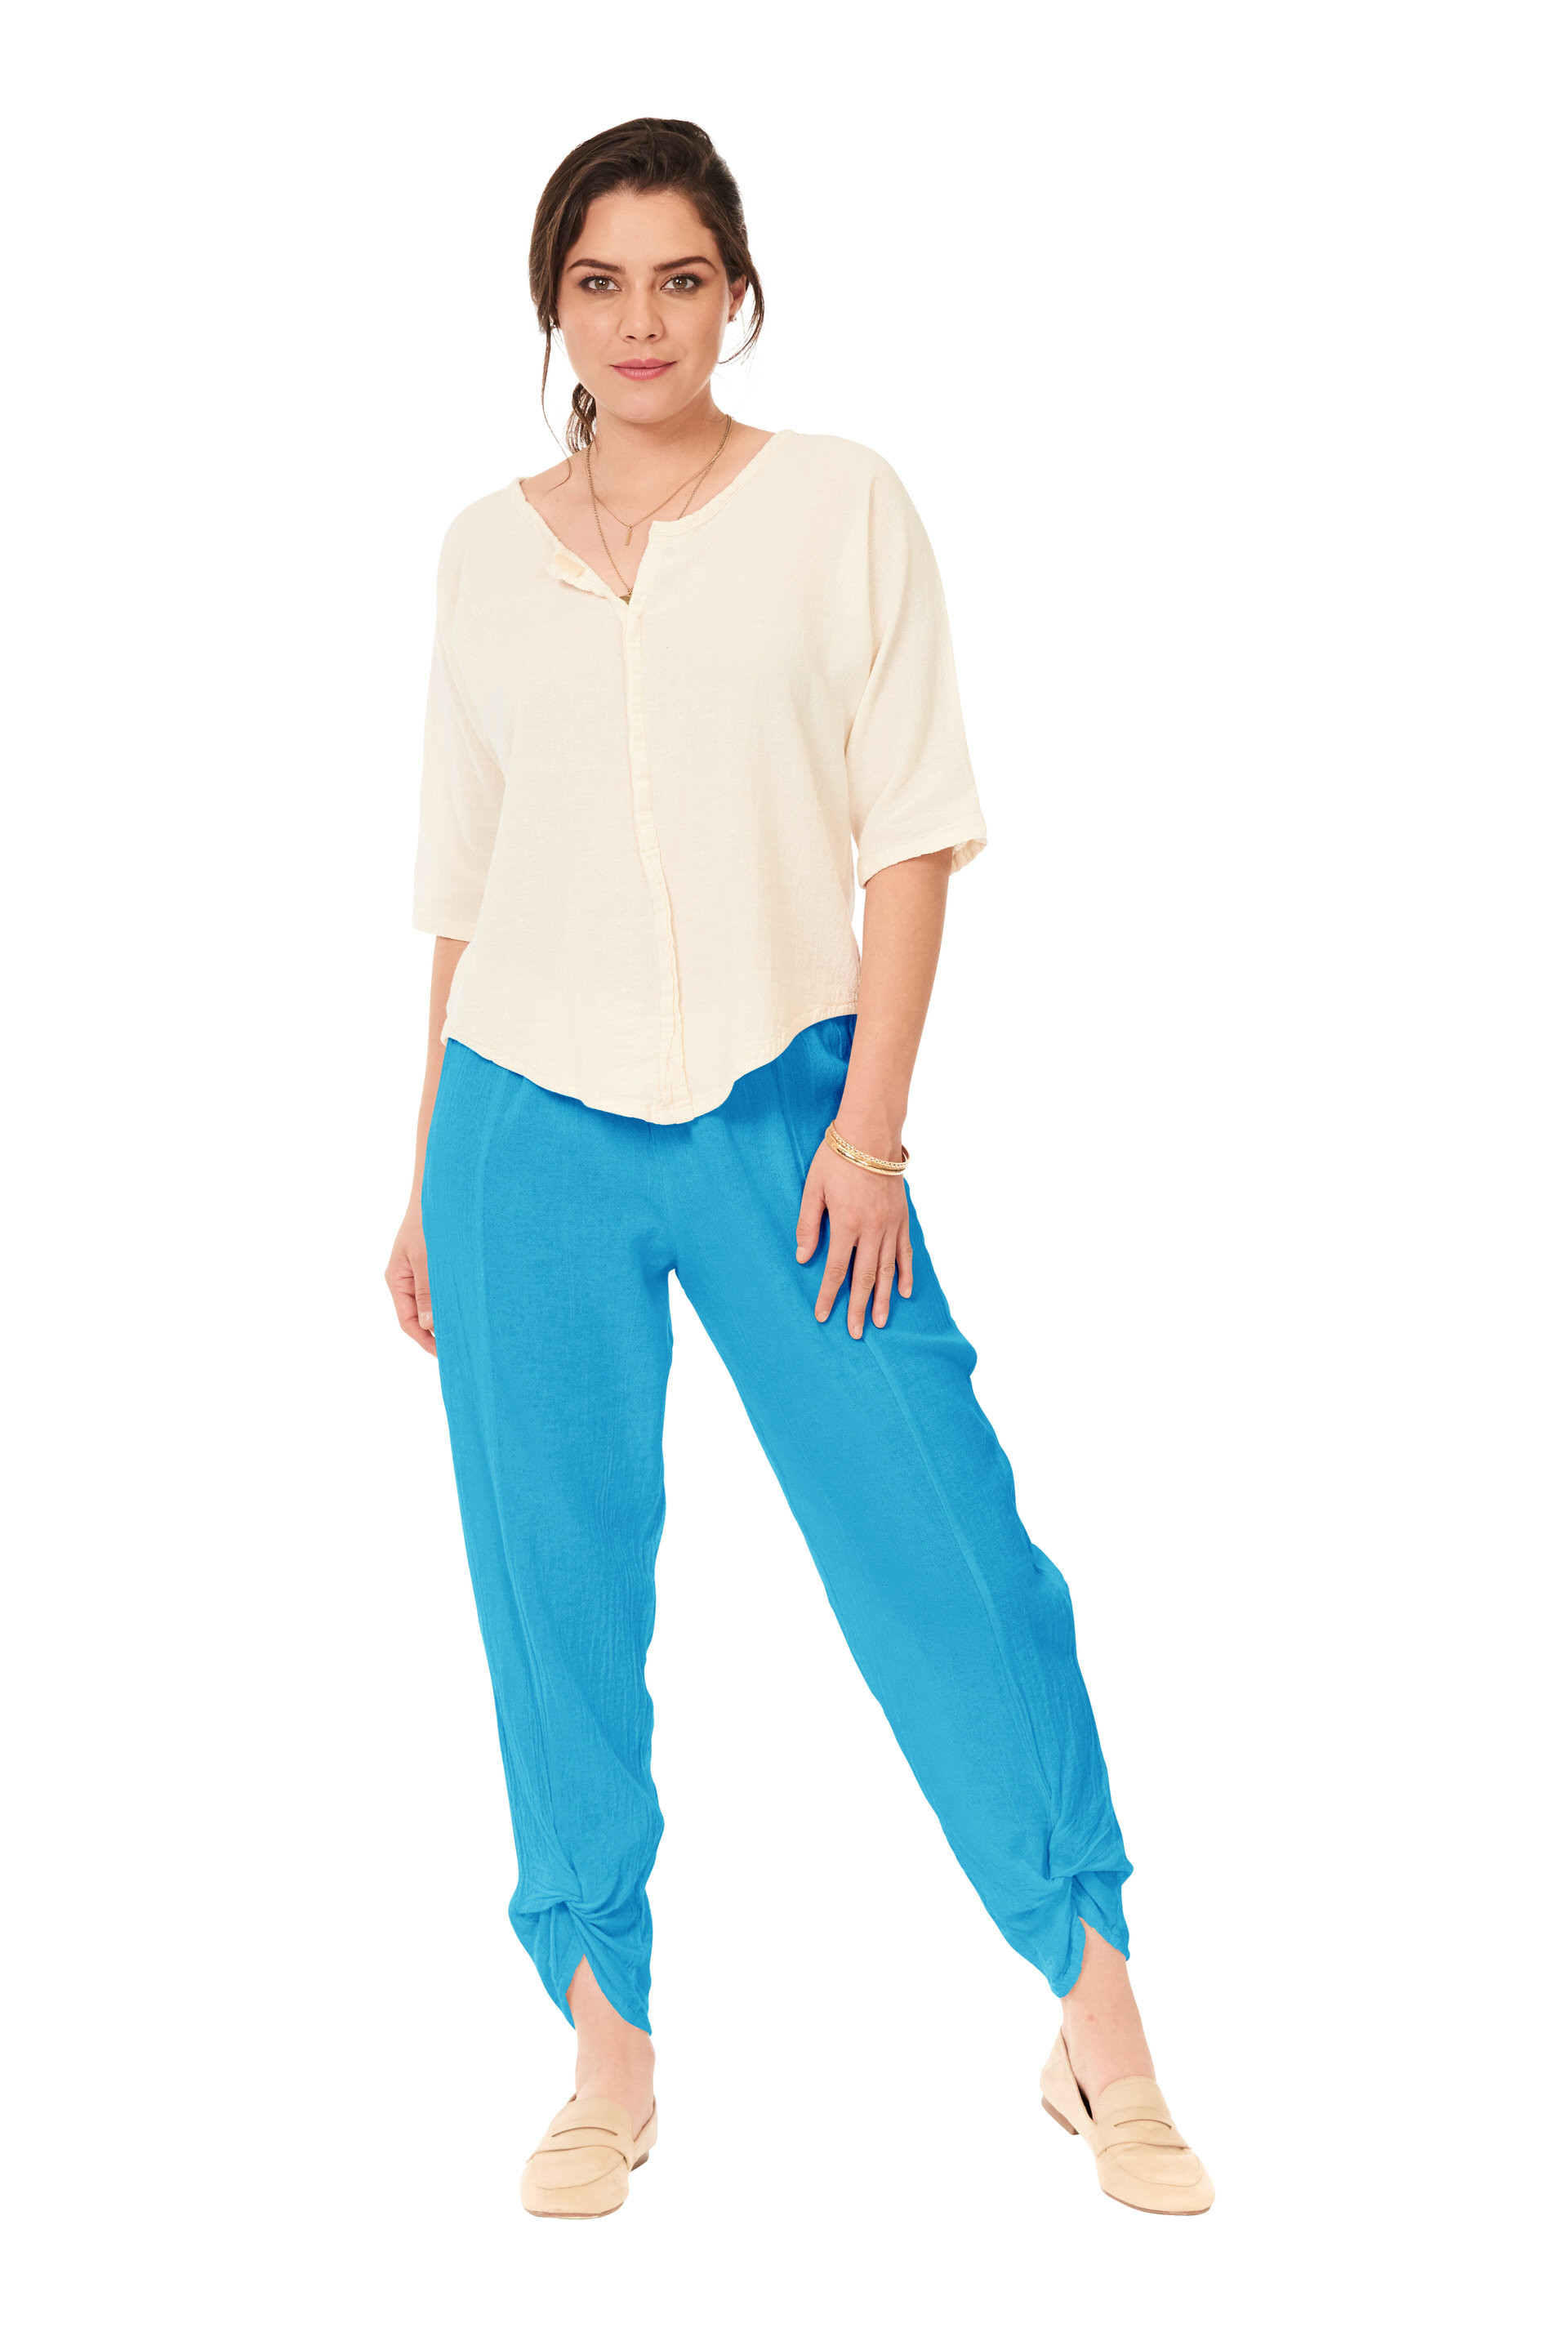 OMG - A tapered cotton gauze pant with a twisted detail hem.